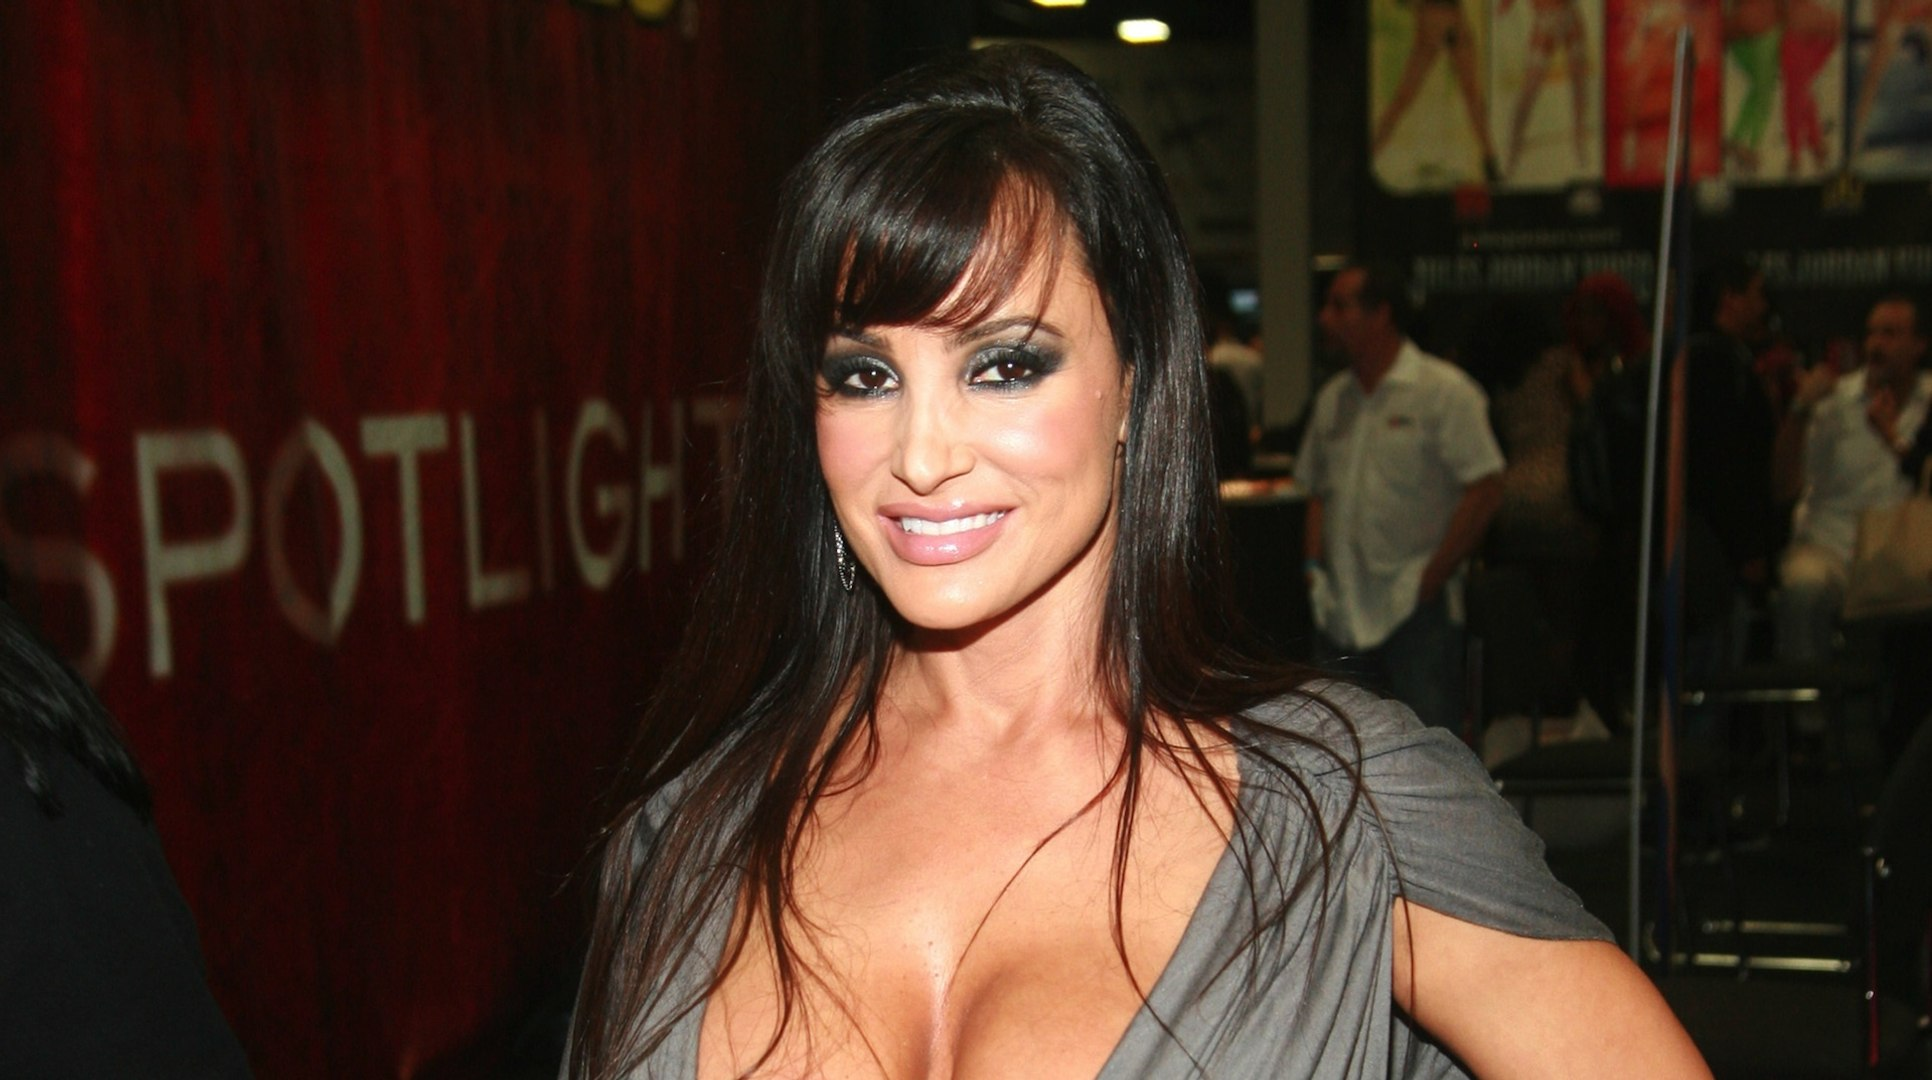 Porn Star Lisa Ann & Notre Dame Football Player Justin Brent Take Post-Sex Selfie